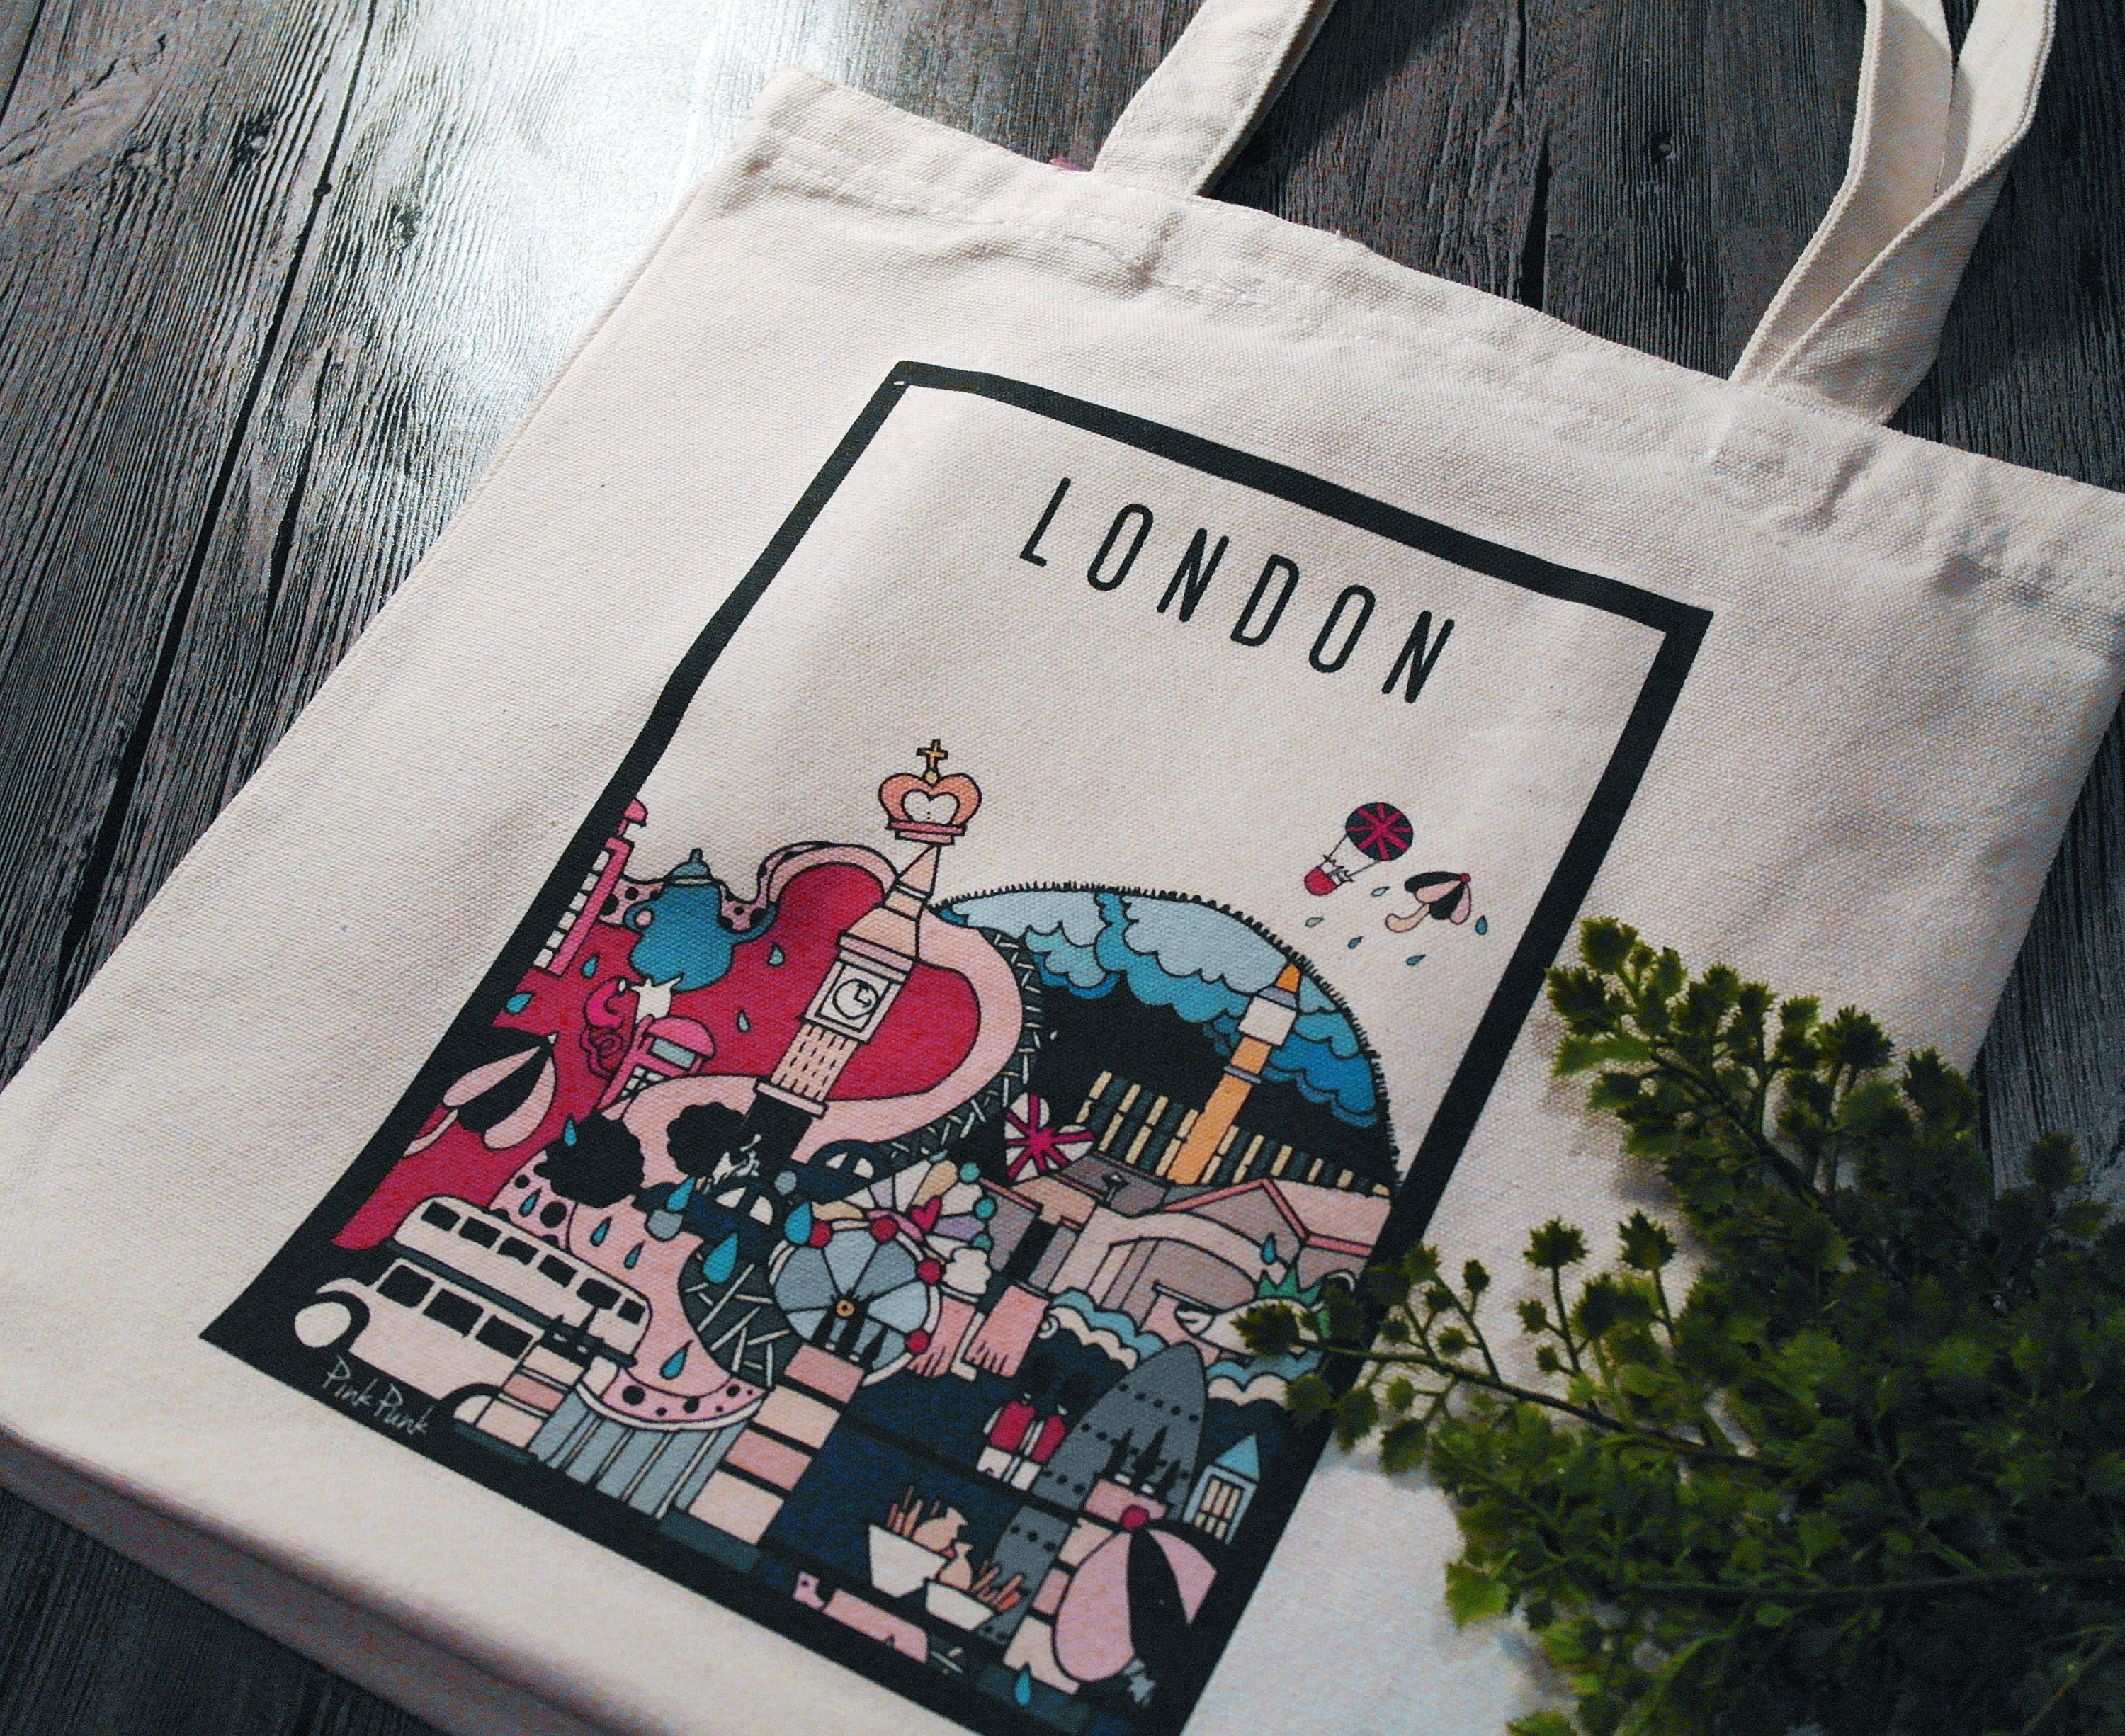 London Royal Bag UK England Traveling Souvenir Birthday Gifts Student School Laptop Bags Chic City Sketch Canvas Lifestyle Fun Totes